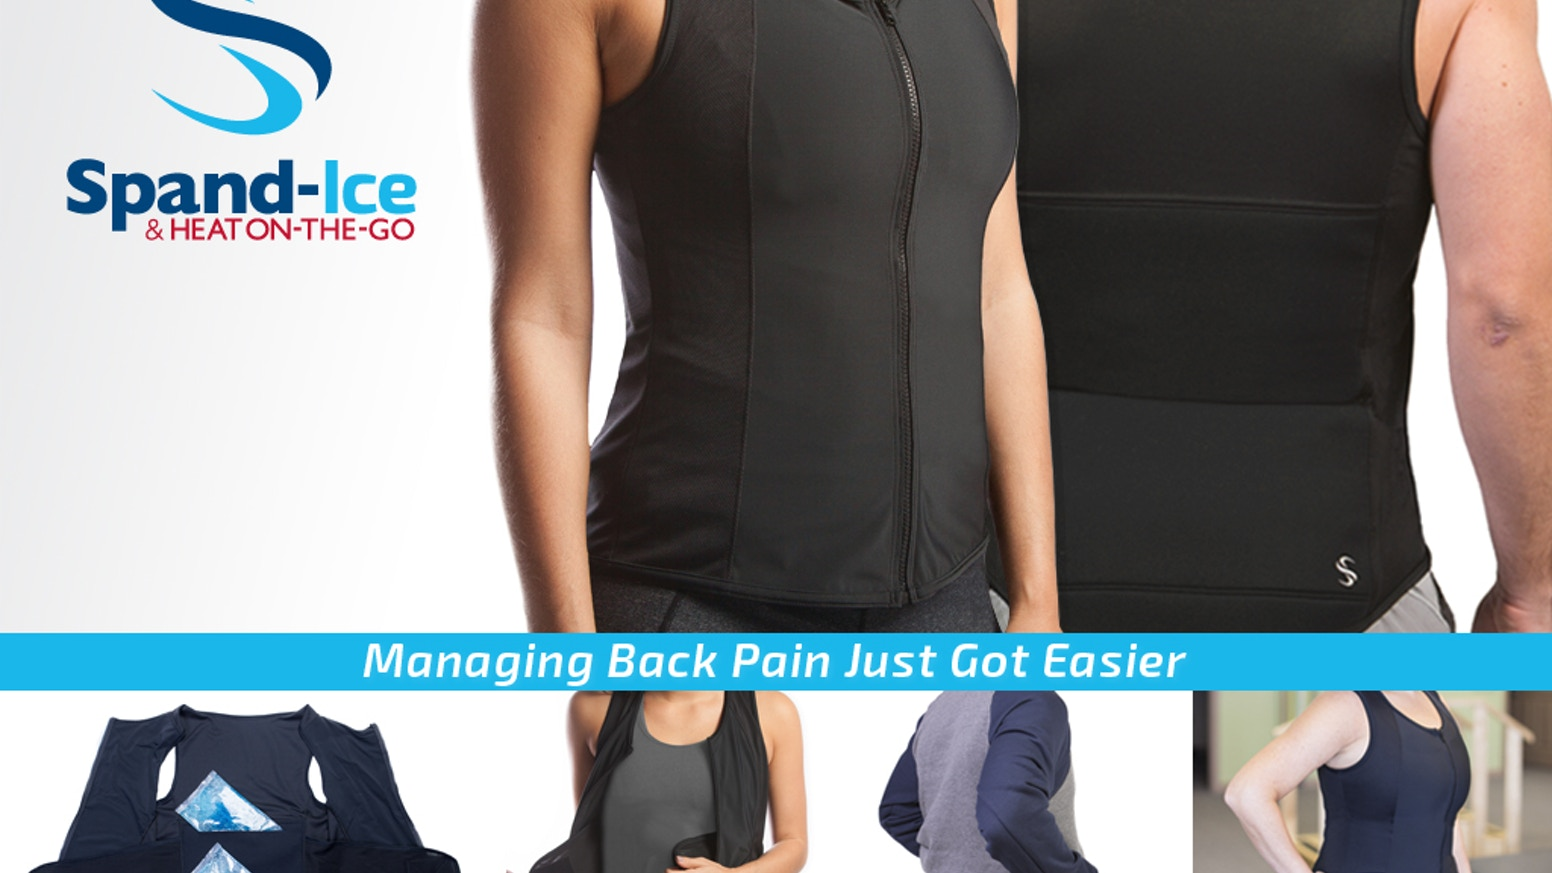 The Revive Tank helps you relieve back inflammation & muscle pain through thermal therapy while staying mobile & active.